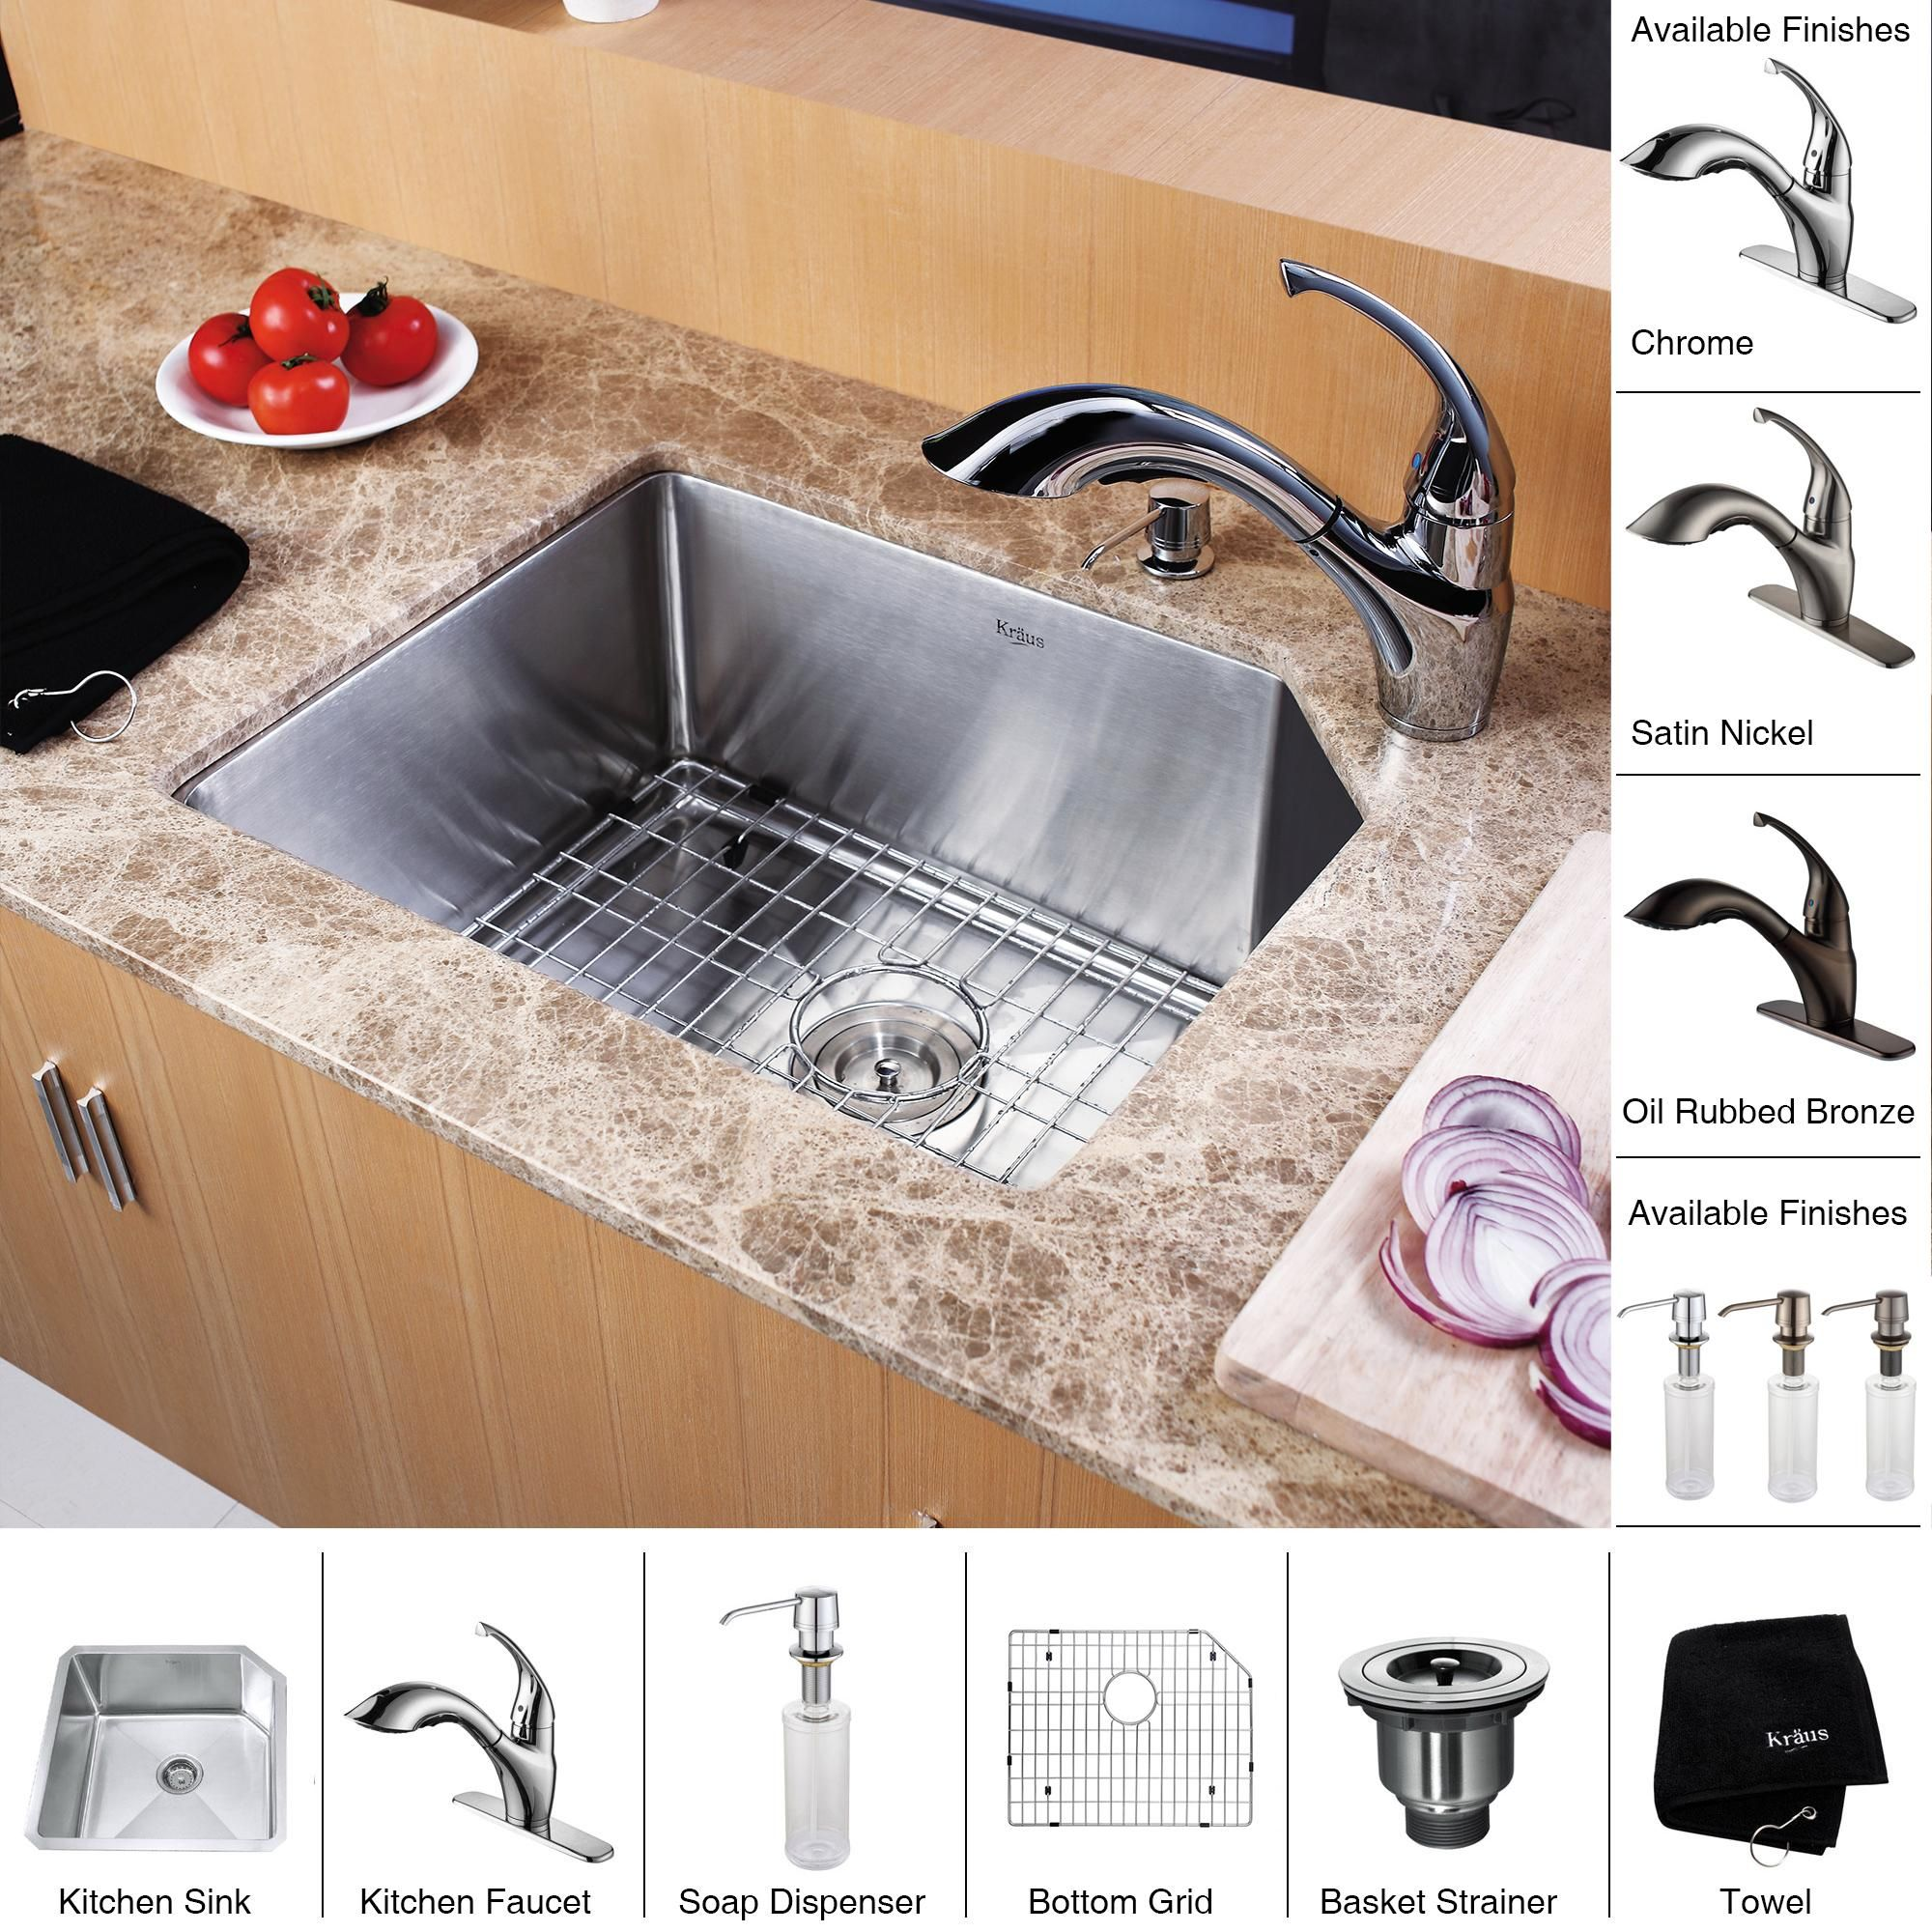 Kraus Kitchen Combo Set 23 Inch Undermount Sink With Faucet